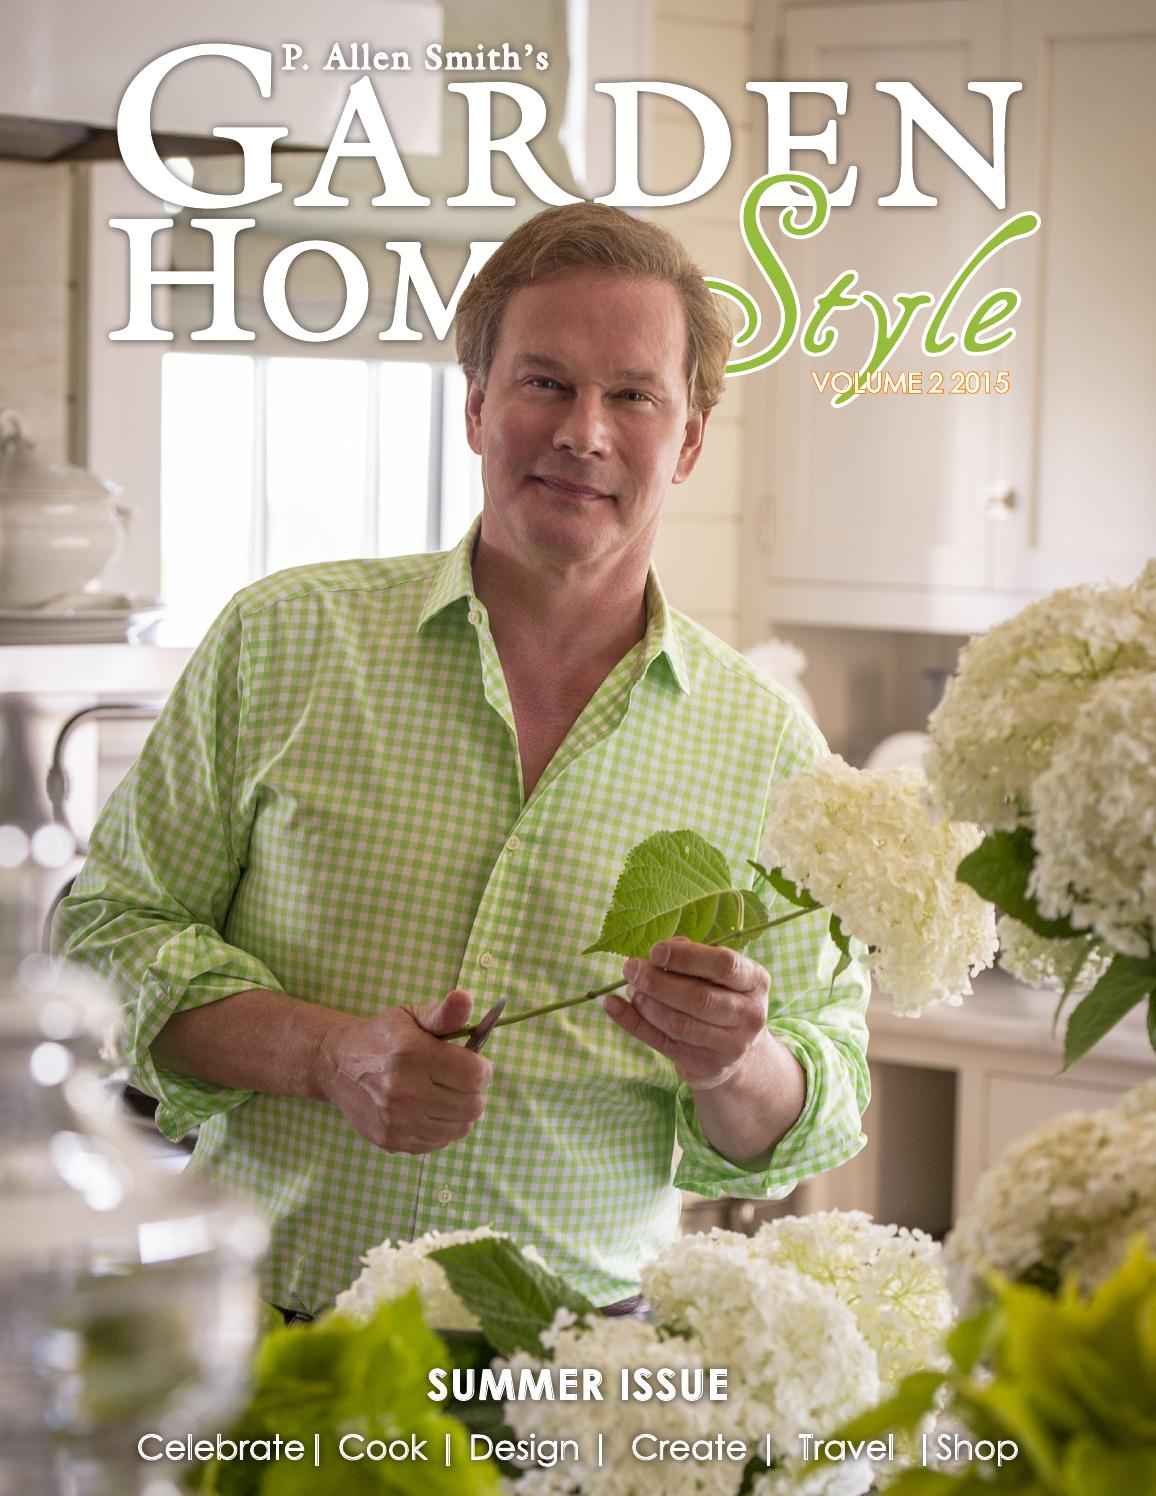 page_1 P Allen Smith Home Plans on p allen smith garden home, smith house plans, rustic cottage home plans, p allen smith city home, smaller smarter home plans, p allen smith ehow home, 2013 southern living house plans, p allen smith home tour, p allen smith home arkansas, p allen smith home interiors, organic home plans,